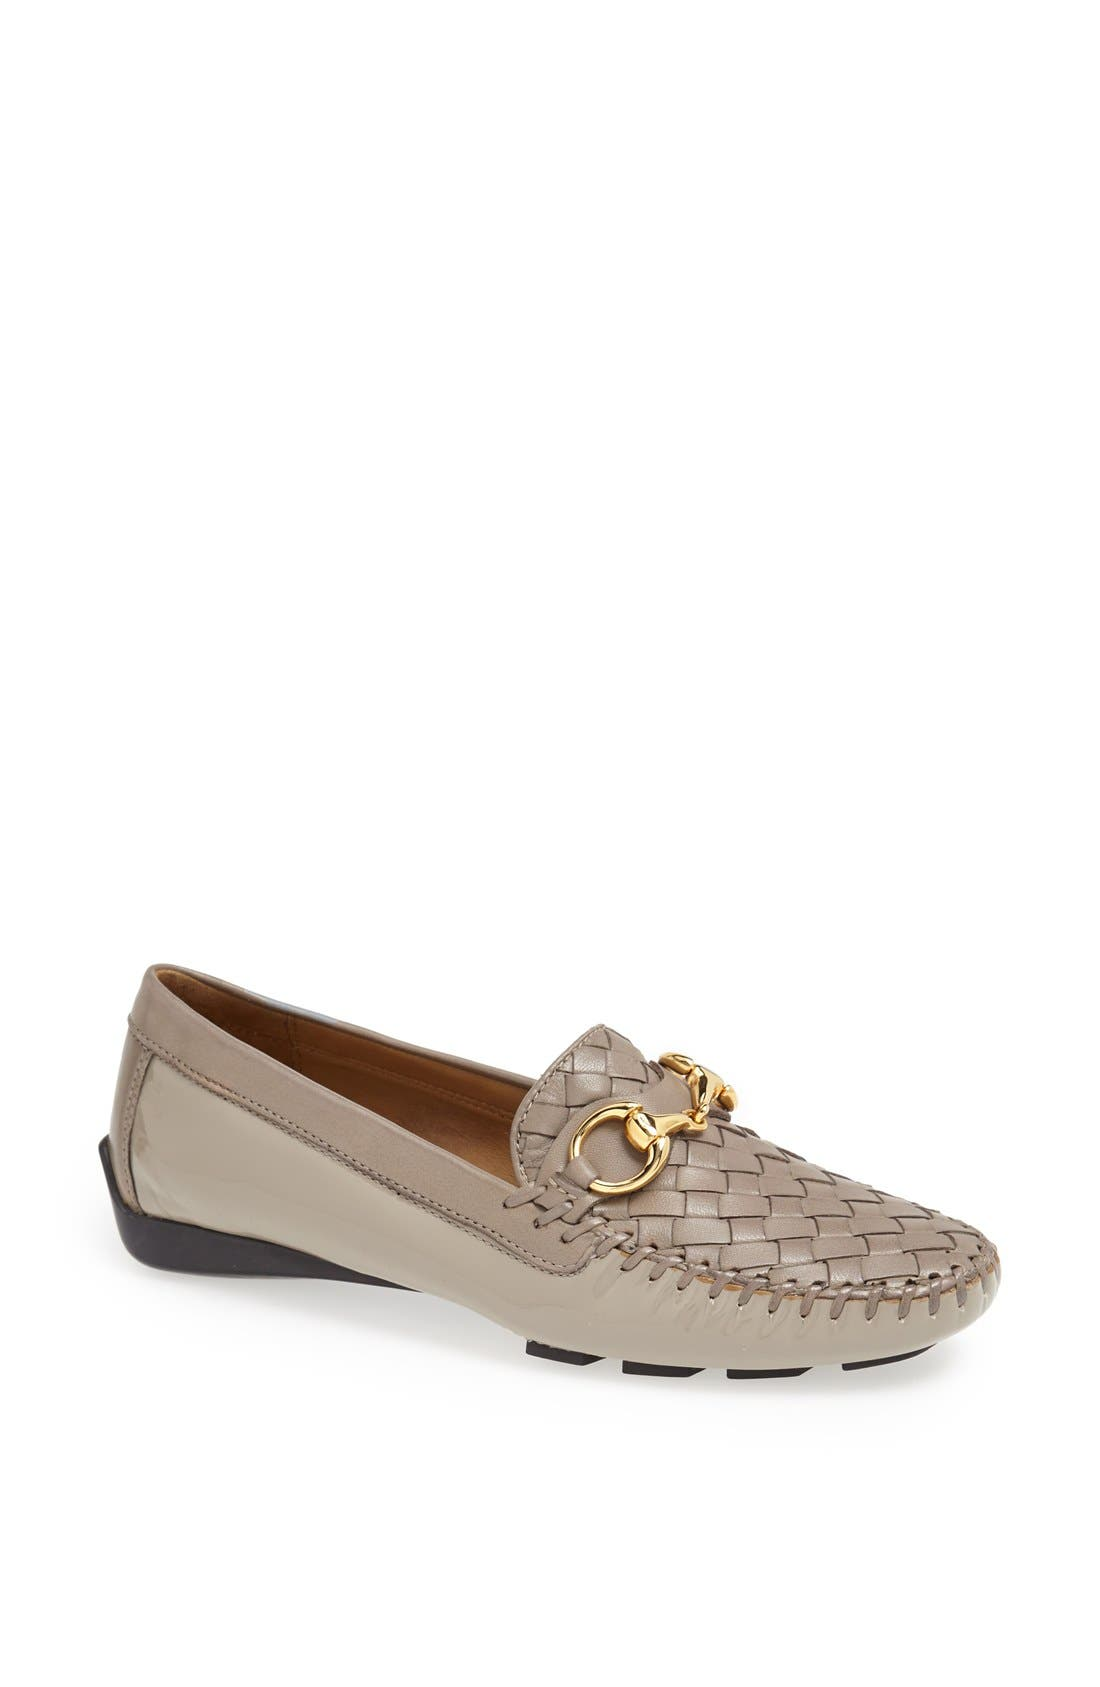 'Perlata' Loafer,                             Main thumbnail 1, color,                             Taupe Patent